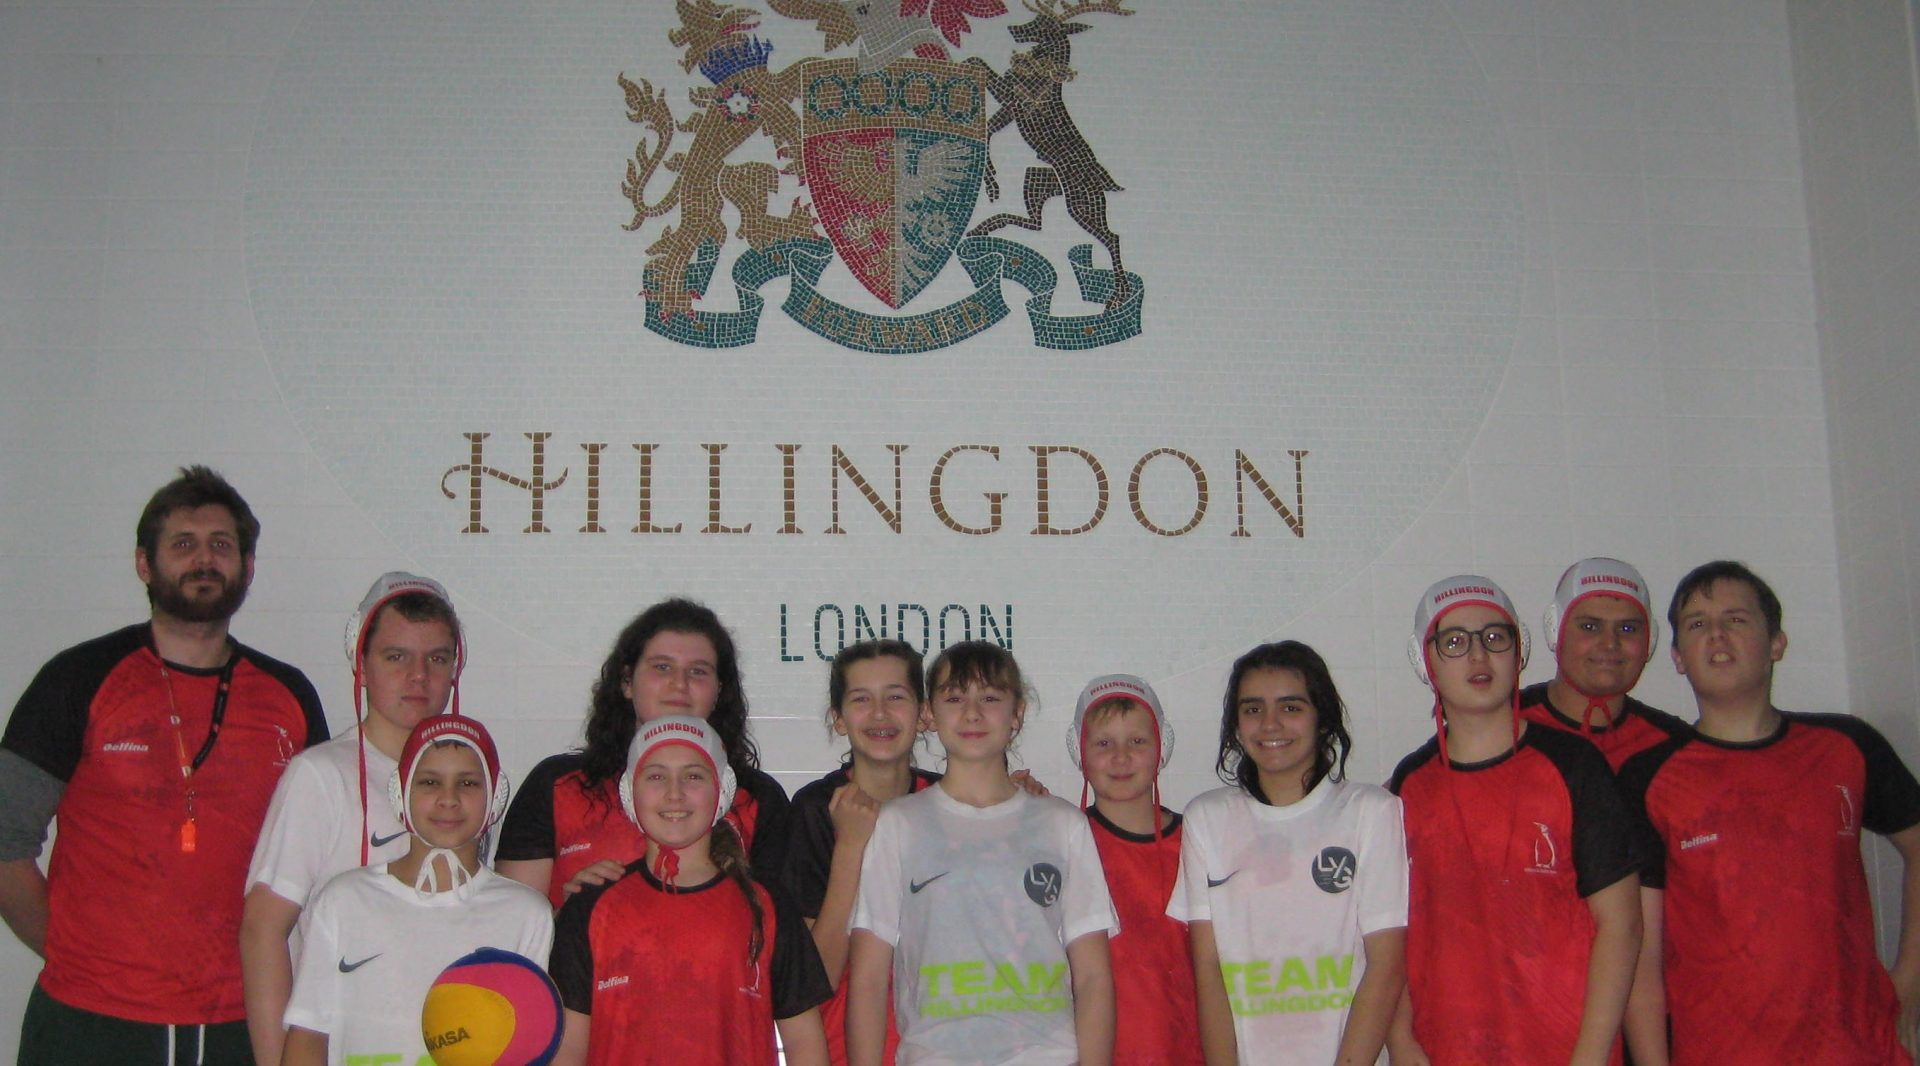 Hillingdon London Youth Games water polo team